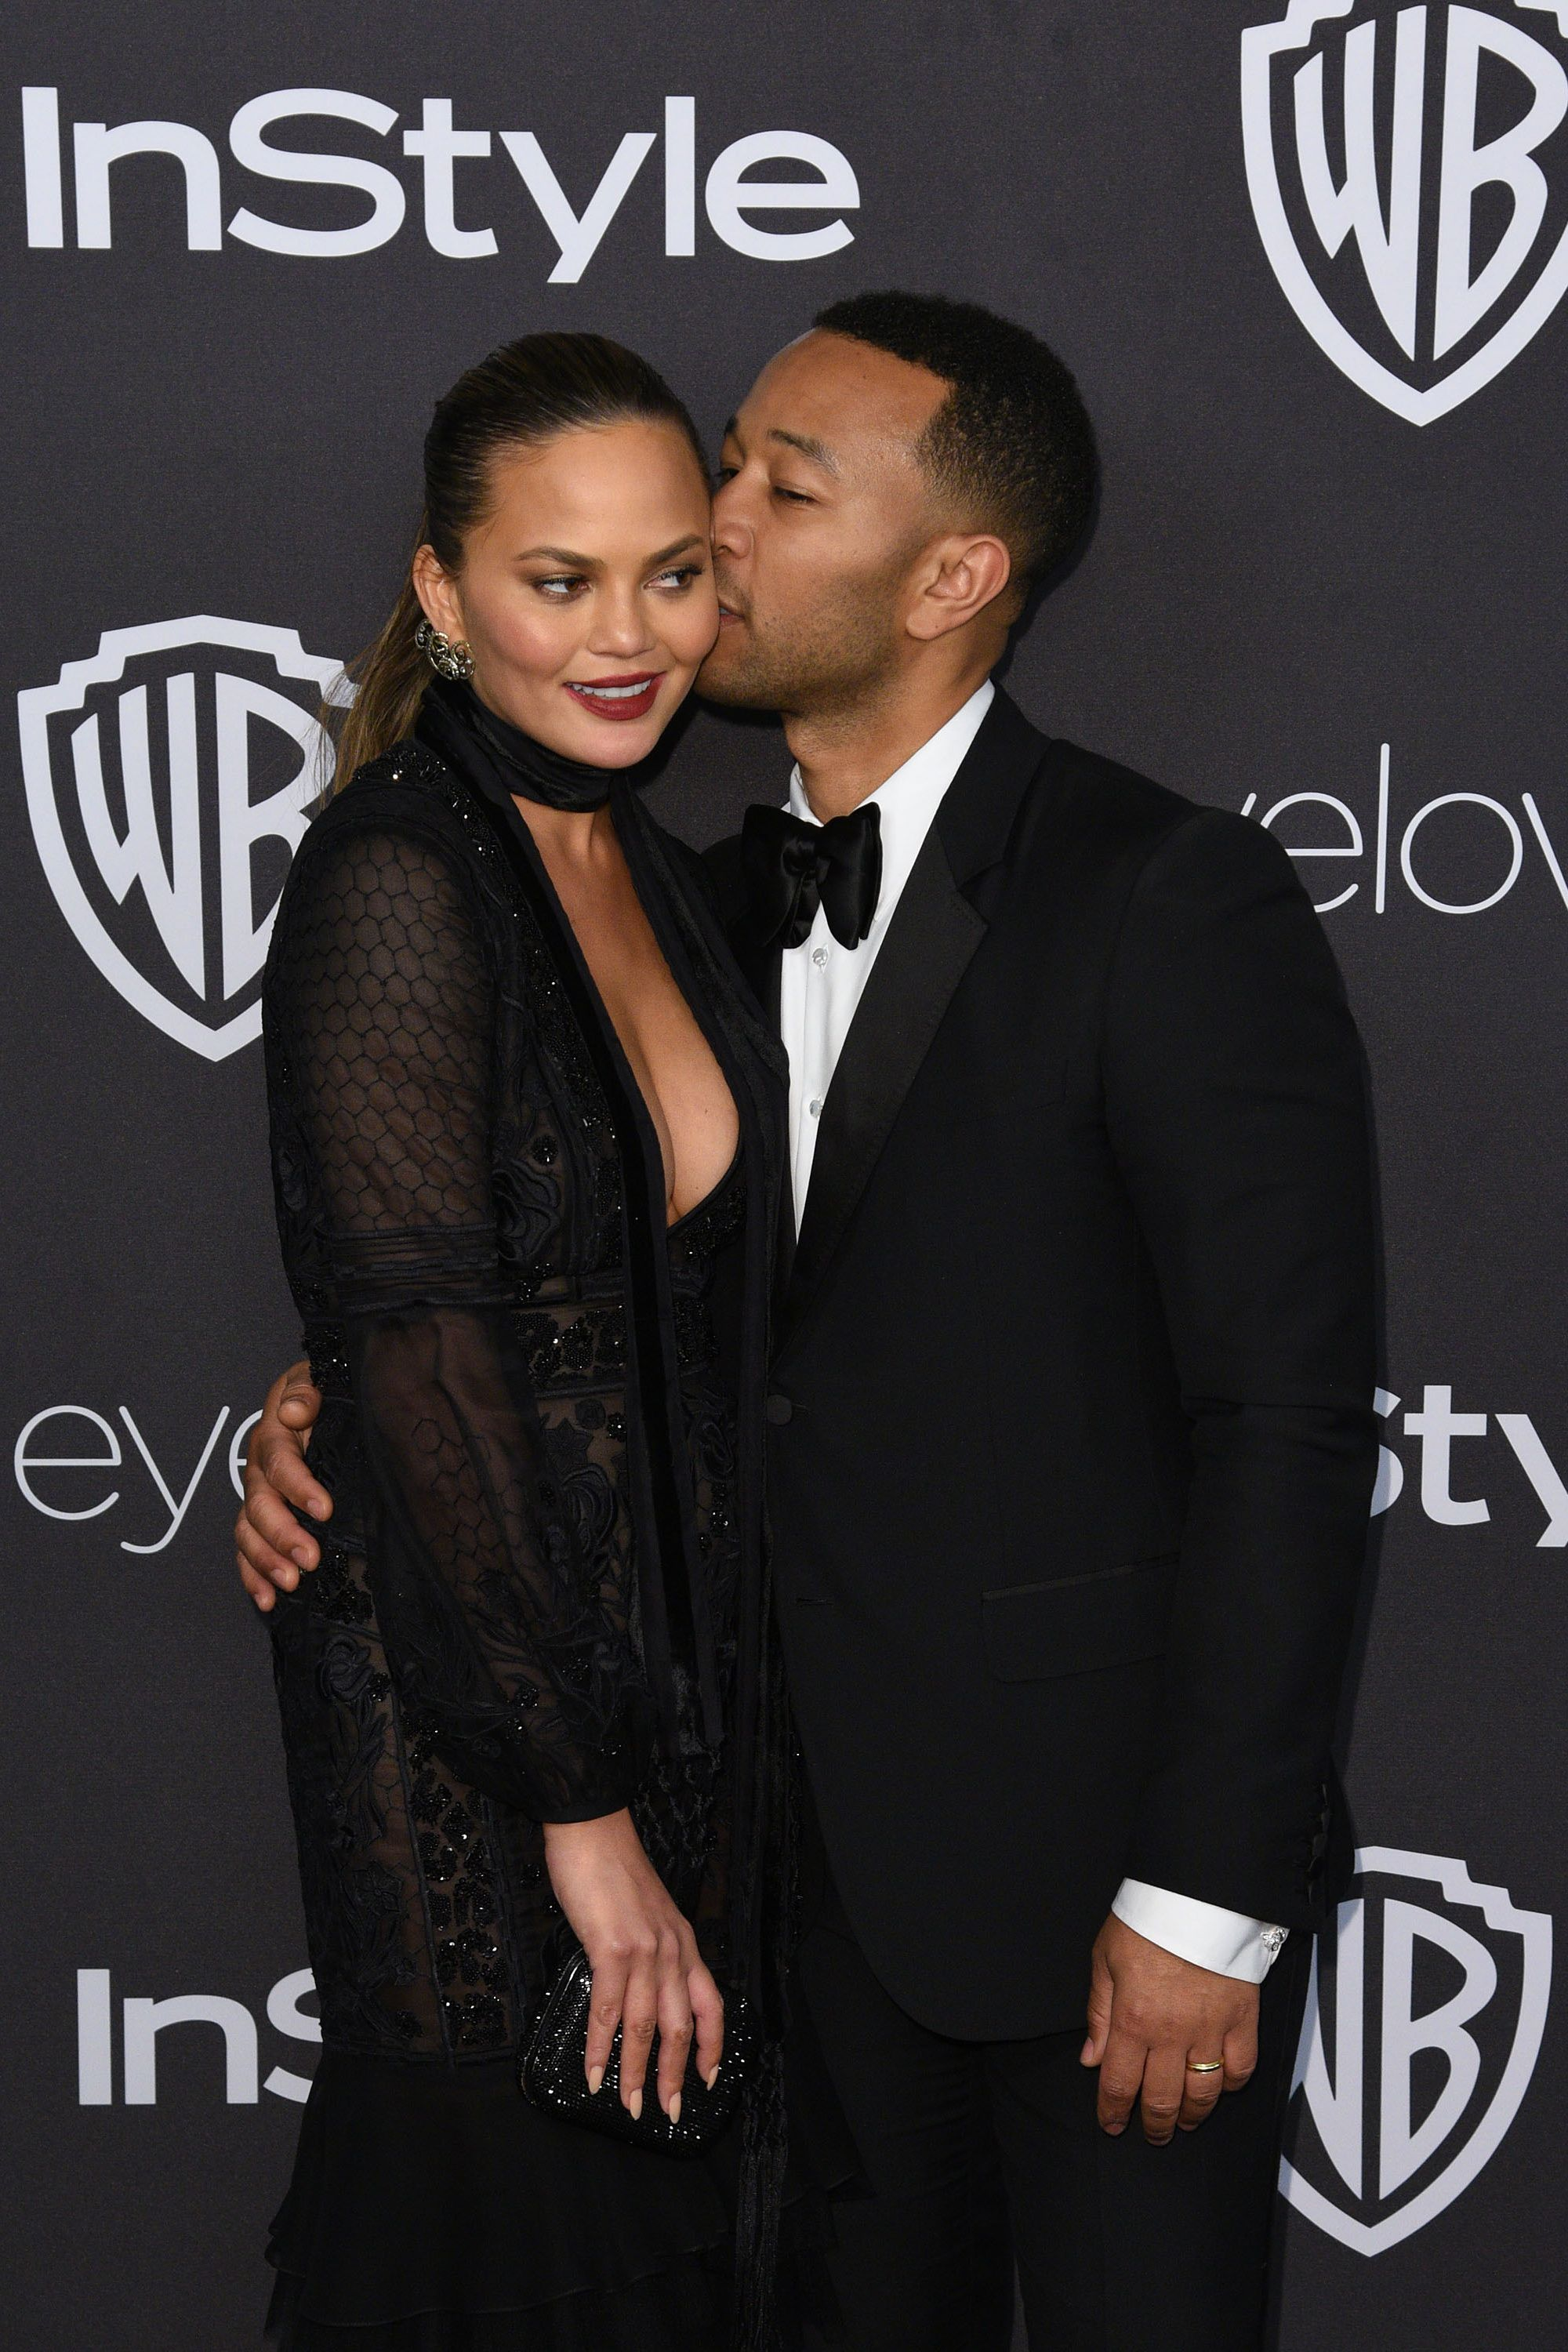 """<p><strong data-redactor-tag=""""strong"""" data-verified=""""redactor"""">Wife:</strong> Chrissy Teigen</p><p><strong data-redactor-tag=""""strong"""" data-verified=""""redactor"""">Married since: </strong>2013 (together since 2007)</p><p>Legend <a href=""""http://www.cbsnews.com/news/john-legend-talks-wife-chrissy-teigen-as-inspiration-friend-kanye-west-and-the-state-of-rb/"""" target=""""_blank"""" data-tracking-id=""""recirc-text-link"""">on the first time&nbsp&#x3B;Teigen heard """"All of Me,""""</a> the song he wrote for her: """"She loved it.&nbsp&#x3B;And she cried when she first heard it. I sang it to her. I just whispered it to her when we were at home. I wasn't even at the piano. I was just, like, excited about it. I didn't even have the recording yet. […] It was late and I was like, 'You just have to hear this song' And I sang it to her and she just started crying.""""<span class=""""redactor-invisible-space"""" data-verified=""""redactor"""" data-redactor-tag=""""span"""" data-redactor-class=""""redactor-invisible-space""""></span></p>"""